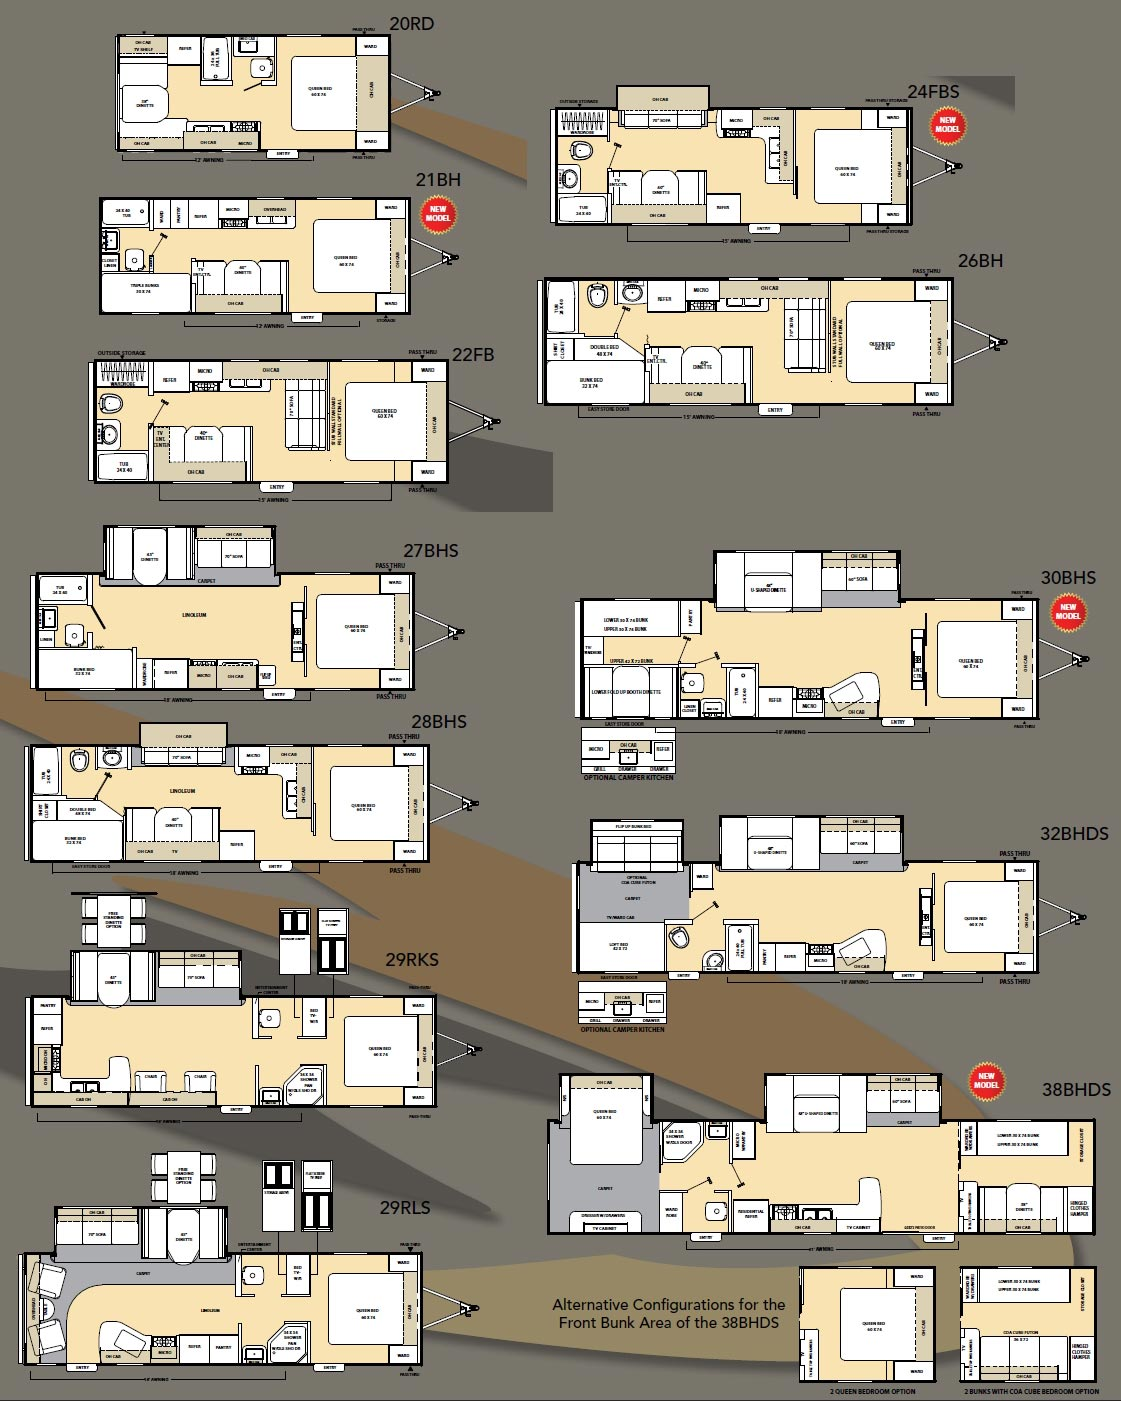 coachmen catalina travel trailer floorplans large?resize\\\\\\\=806%2C1007\\\\\\\&ssl\\\\\\\=1 coachmen catalina wiring diagram electrical wiring diagrams